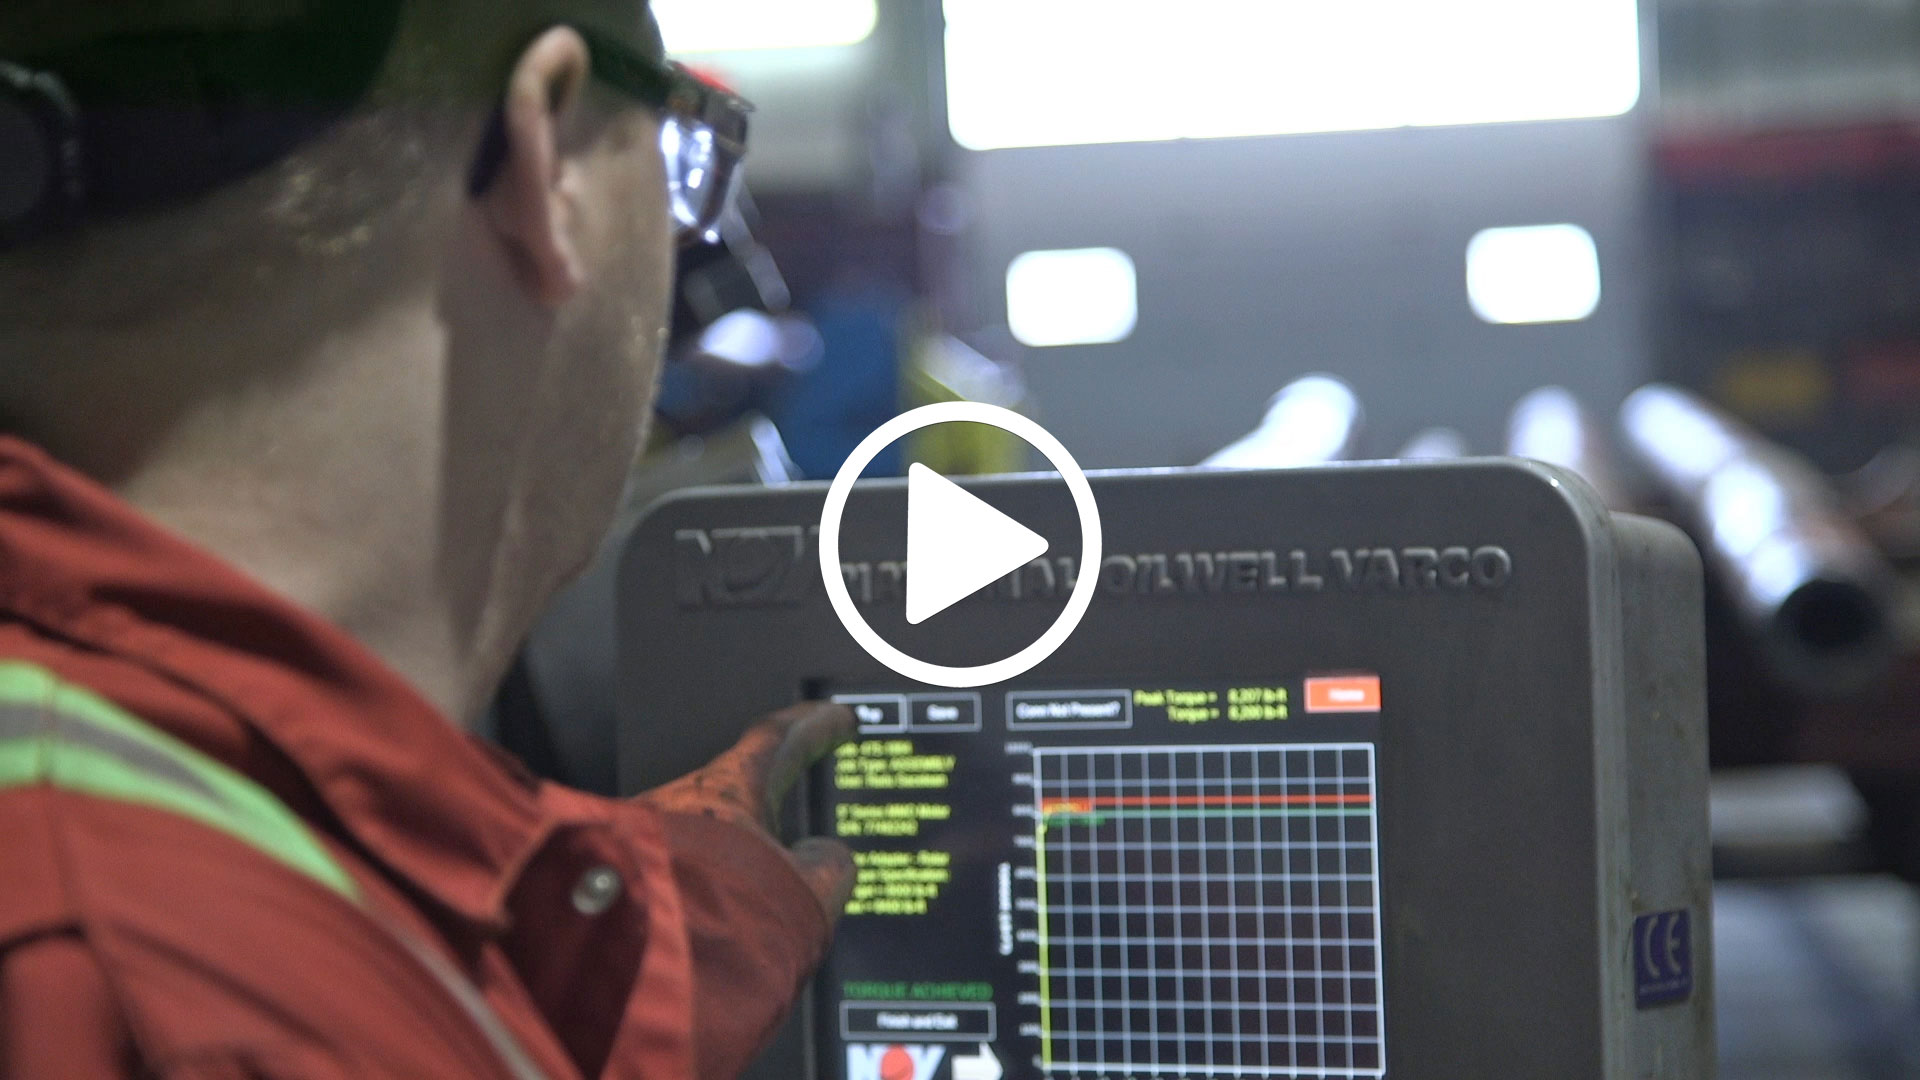 Watch our careers video for available job opening Directional Driller in Bakersfield, CA